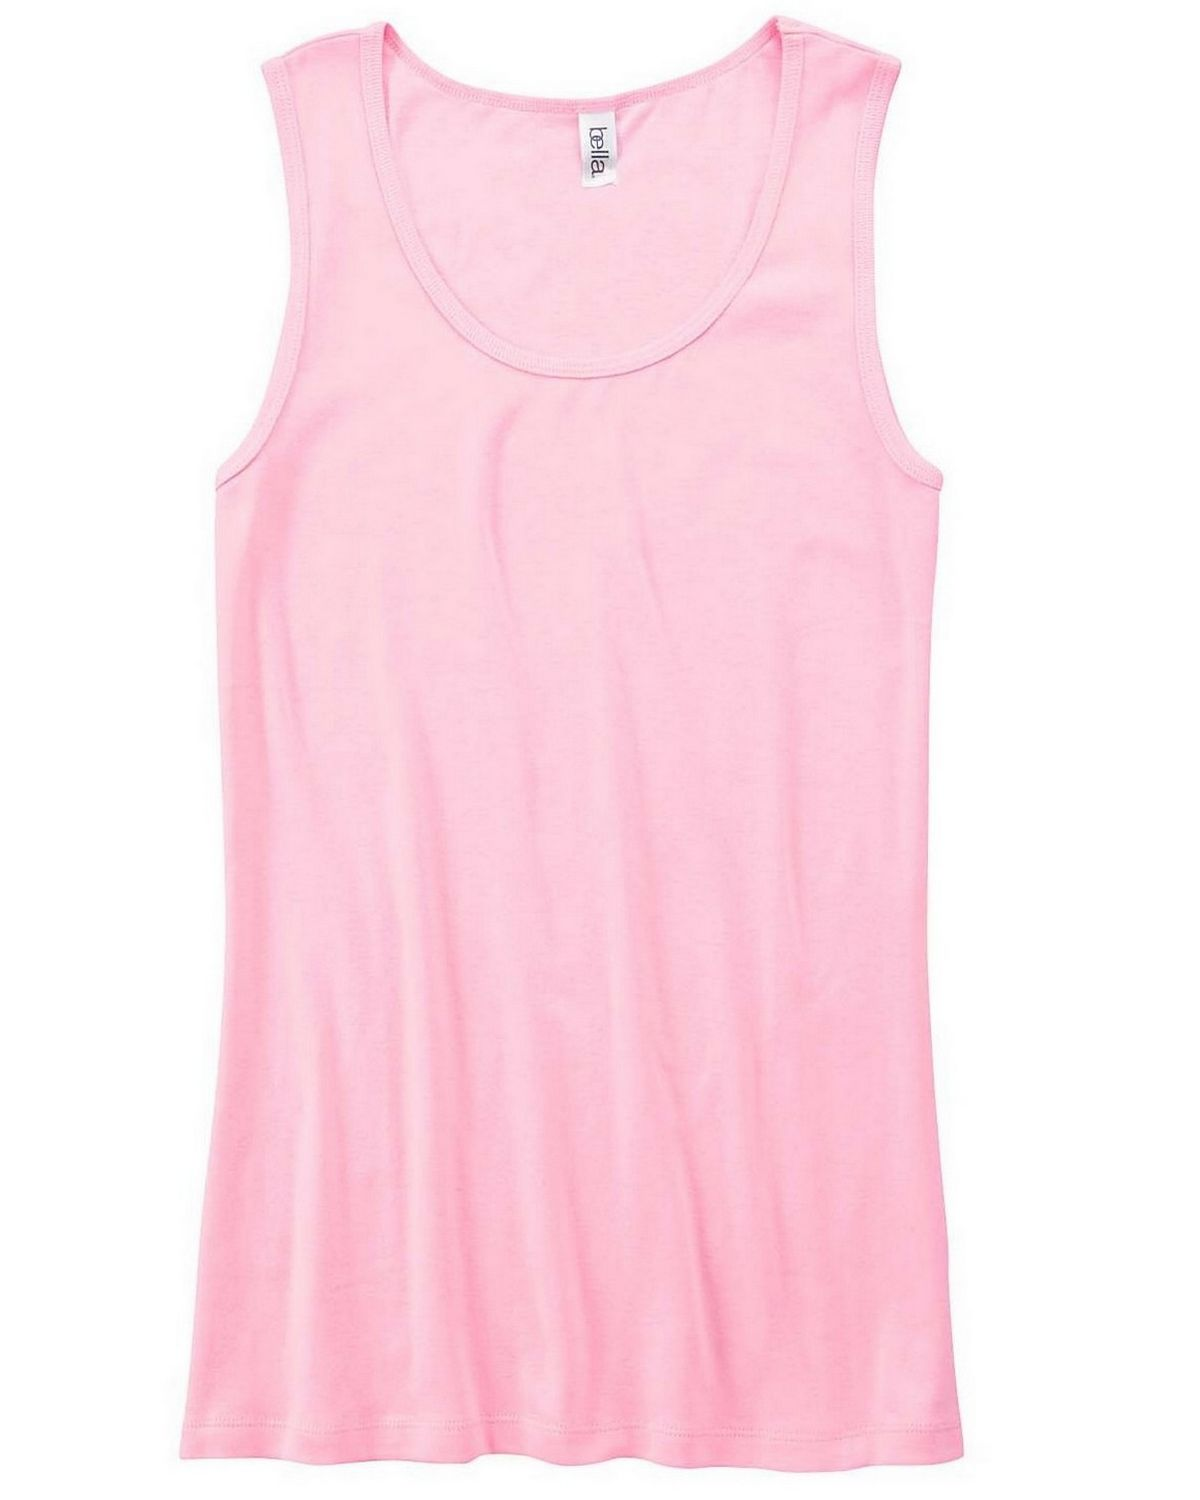 Bella + Canvas 6480 Ladies Missy Widestrap Baby Rib Tank - Pink - XL 6480